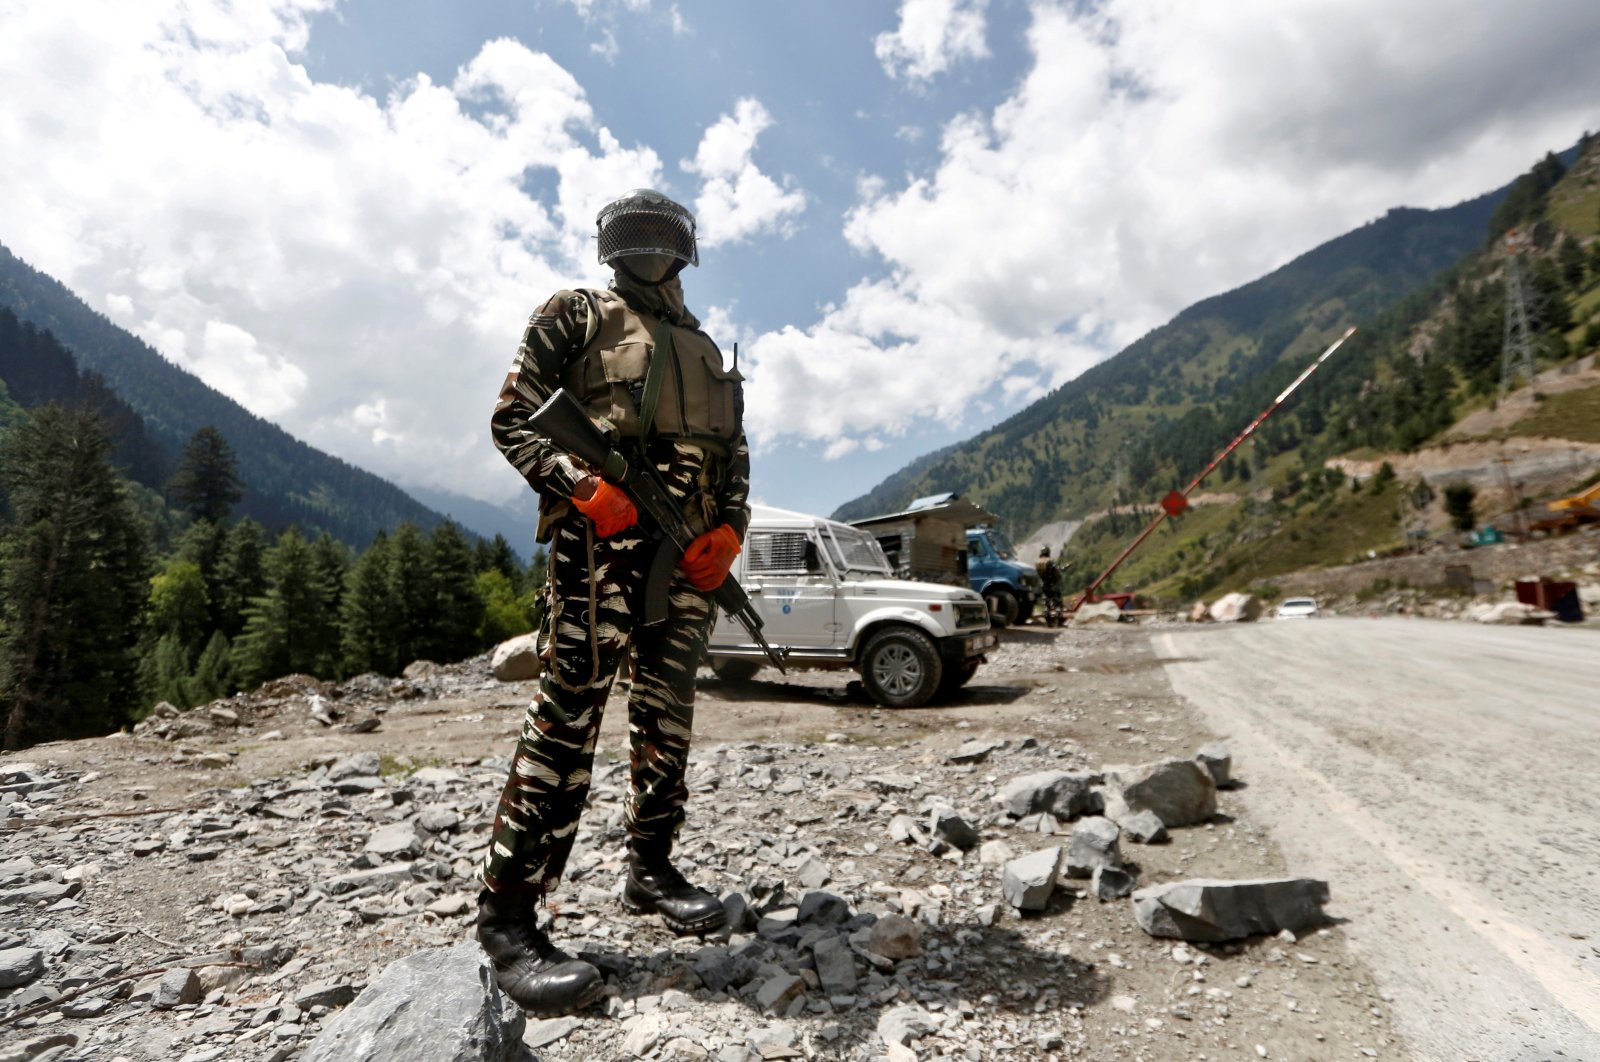 A member of the Indian Central Reserve Police Force (CRPF) stands guard at a checkpoint along a highway leading to Ladakh, at Gagangeer in Kashmir's Ganderbal district, Sept. 2, 2020. (REUTERS)